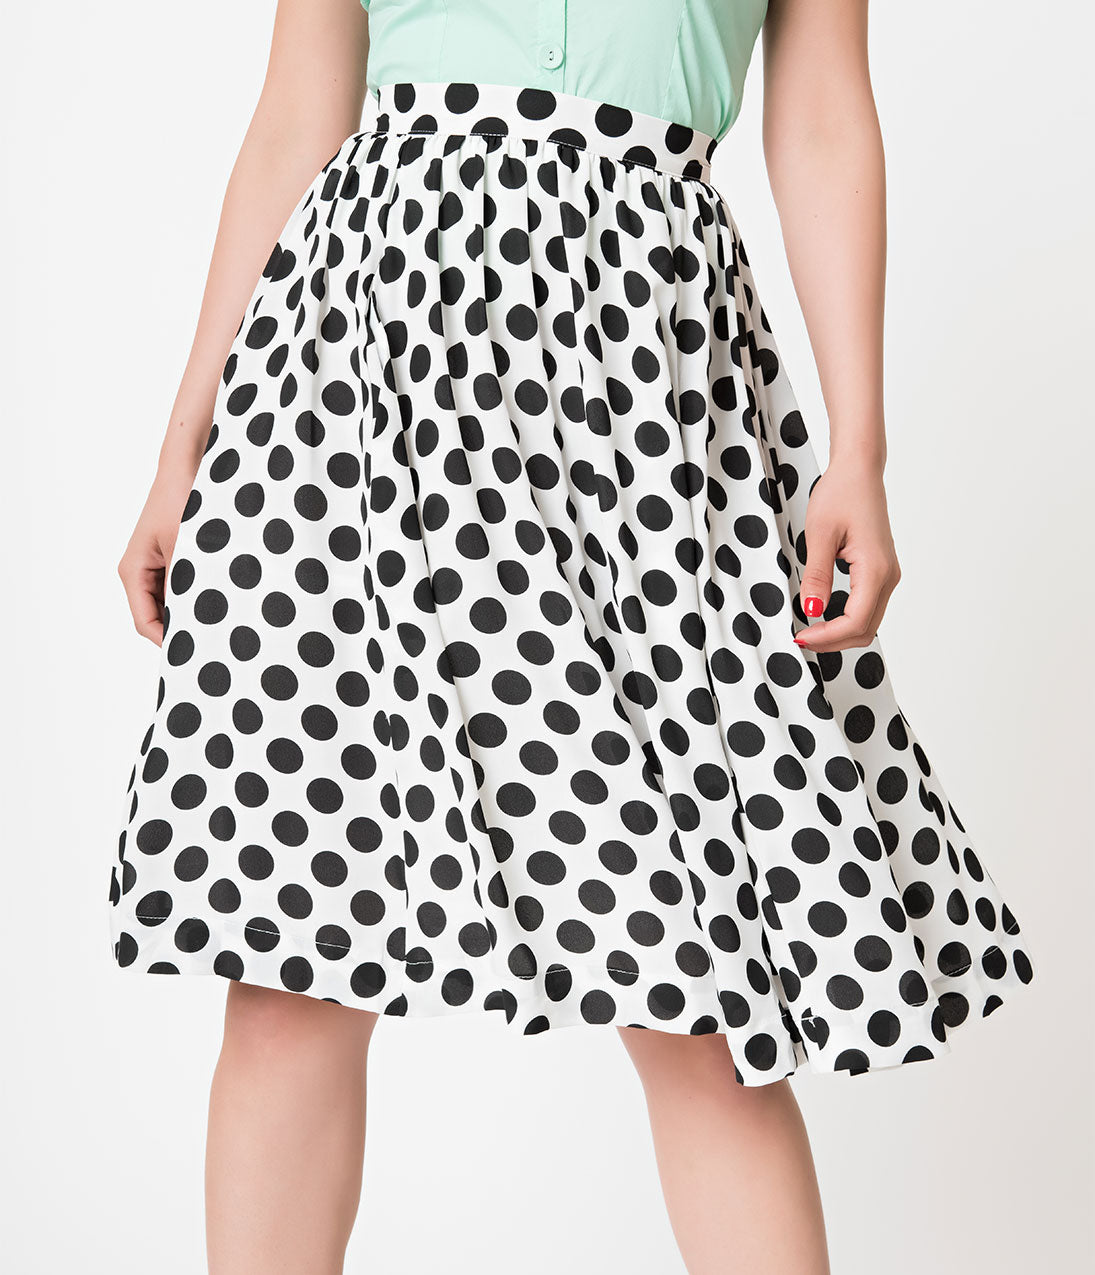 1930s Style Skirts : Midi Skirts, Tea Length, Pleated Retro Style White  Black Polka Dot Chiffon Flare Skirt $46.00 AT vintagedancer.com